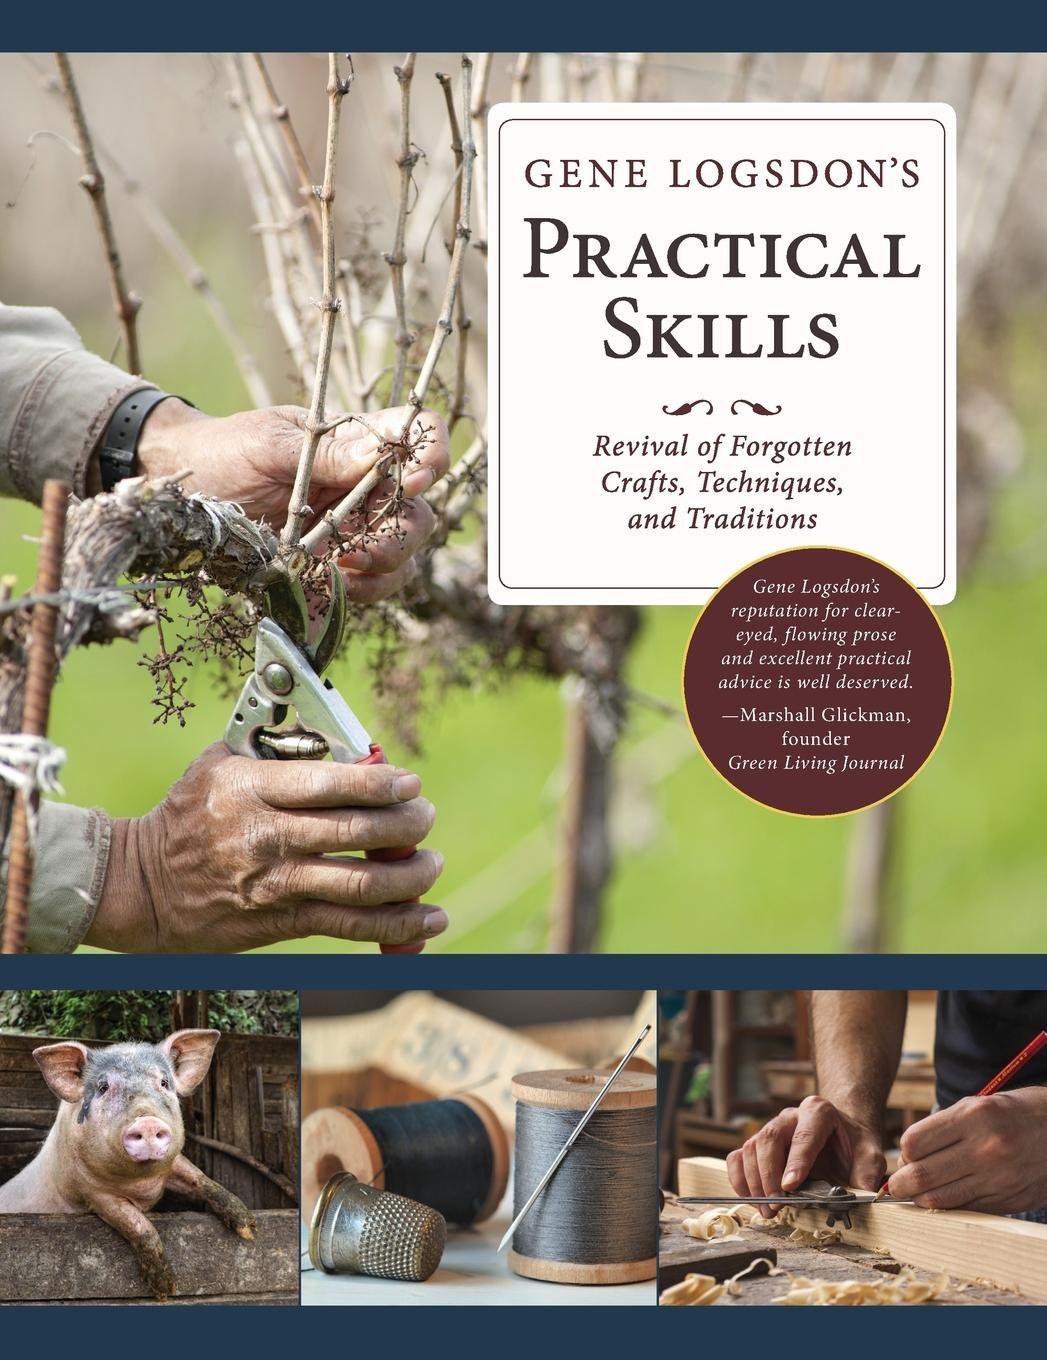 Gene Logsdon's Practical Skills: A Revival of Forgotten Crafts, Techniques, and Traditions by Echo Point Books & Media